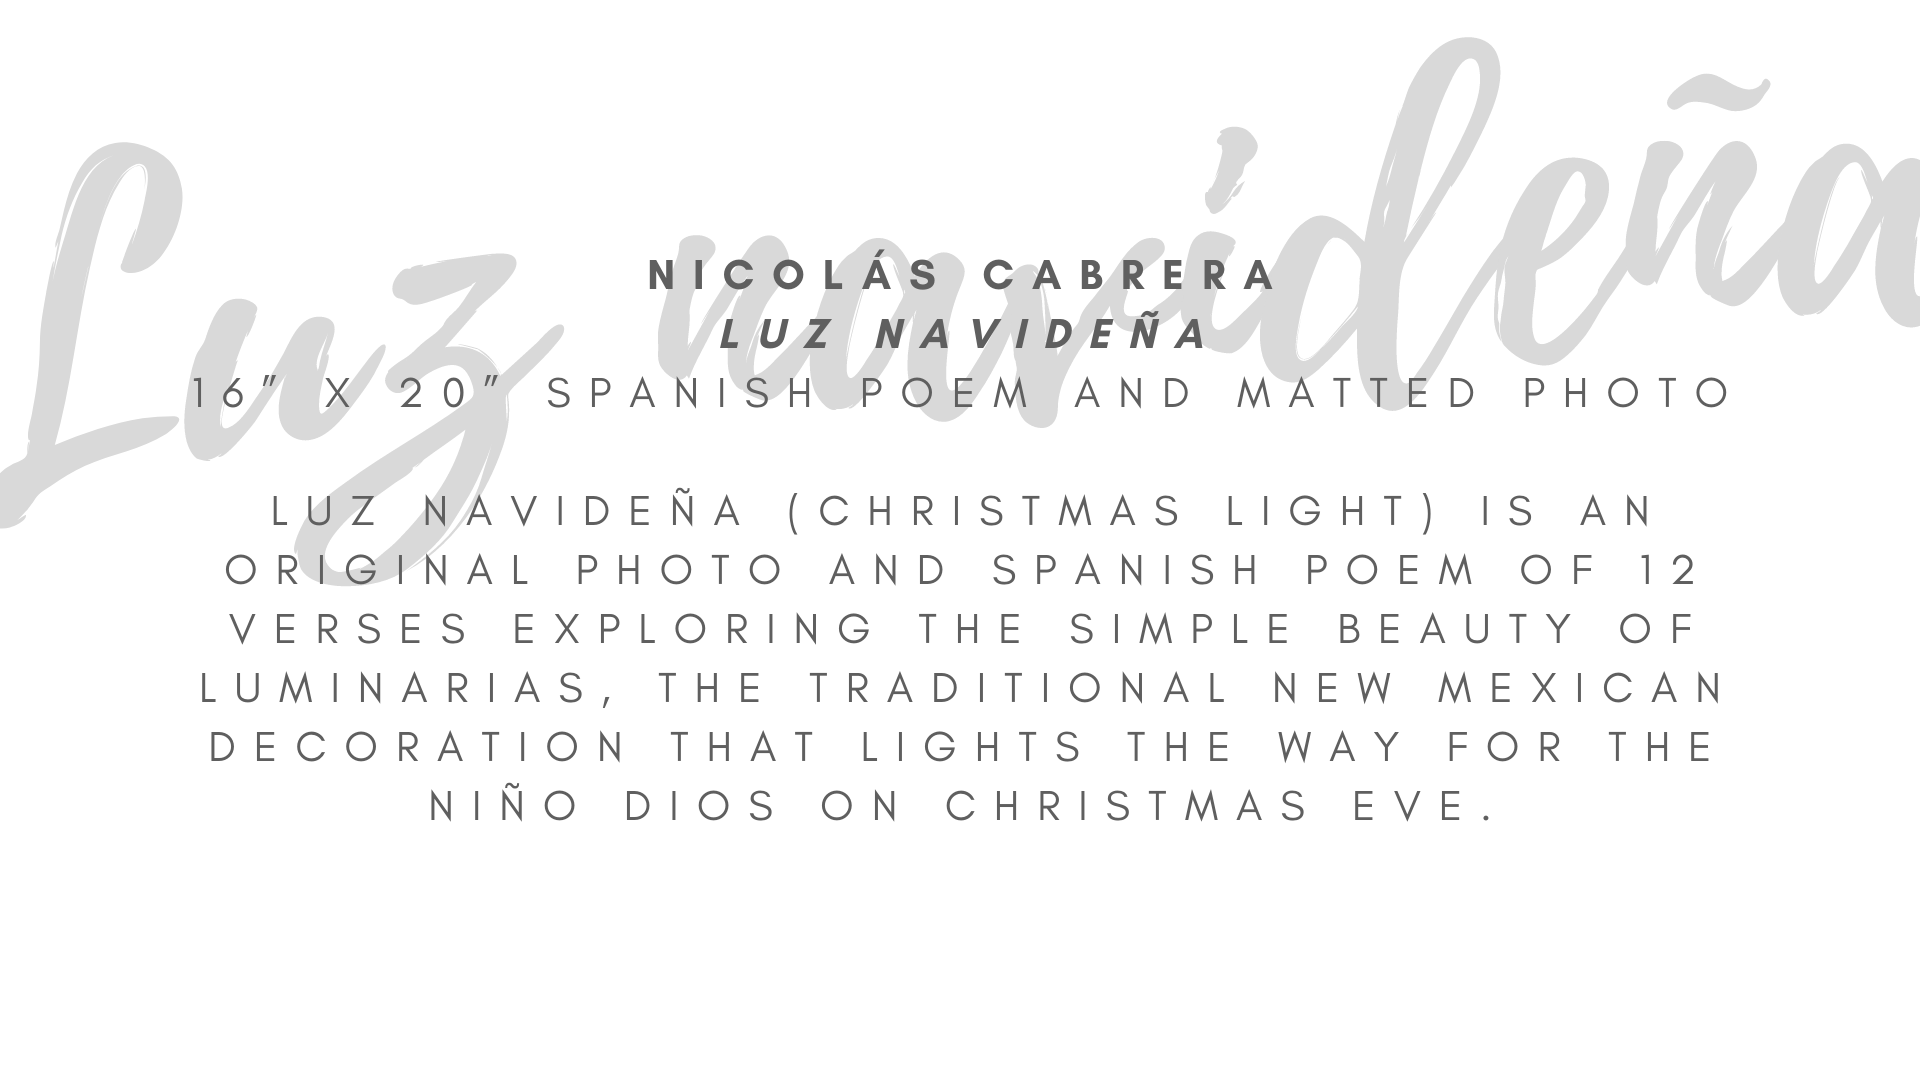 "Nicolás Cabrera ""Luz navideña"" 16"" x 20"" Spanish poem and matted photo  Luz navideña (Christmas Light) is a Spanish poem and matted photo (16"" x 20"") dedicated to luminarias and both offer hope and healing through picture and words. In some places, luminarias are known as farolitos, and the poem has a jovial exchange between both names. In 12 verses, the poem explores the simple beauty and message of hope this traditional New Mexican decoration offers as it lights the way for the Niño Dios on Christmas Eve.  ARTIST STATEMENT Nicolás Cabrera is an award-winning Neomexicano (New Mexican) author who writes in English and Spanish. His first book of poetry, Ecos Neomexicanos: Poesía de la Tierra del Encanto, won first place in the Spanish book category in the 2019 New Mexico-Arizona Book Awards and in 2015 he won a national award for his poem La yerbabuena by the National Federation of Press Women. Luz navideña is his favorite Spanish poem in Ecos Neomexicanos. He currently works with the immigrant community as a librarian in Denver while continuing to write poetry, novels, and plays. Ecos Neomexicanos is available on Amazon and for $10 at select local bookstores – full listing on nicolascabrera.com"